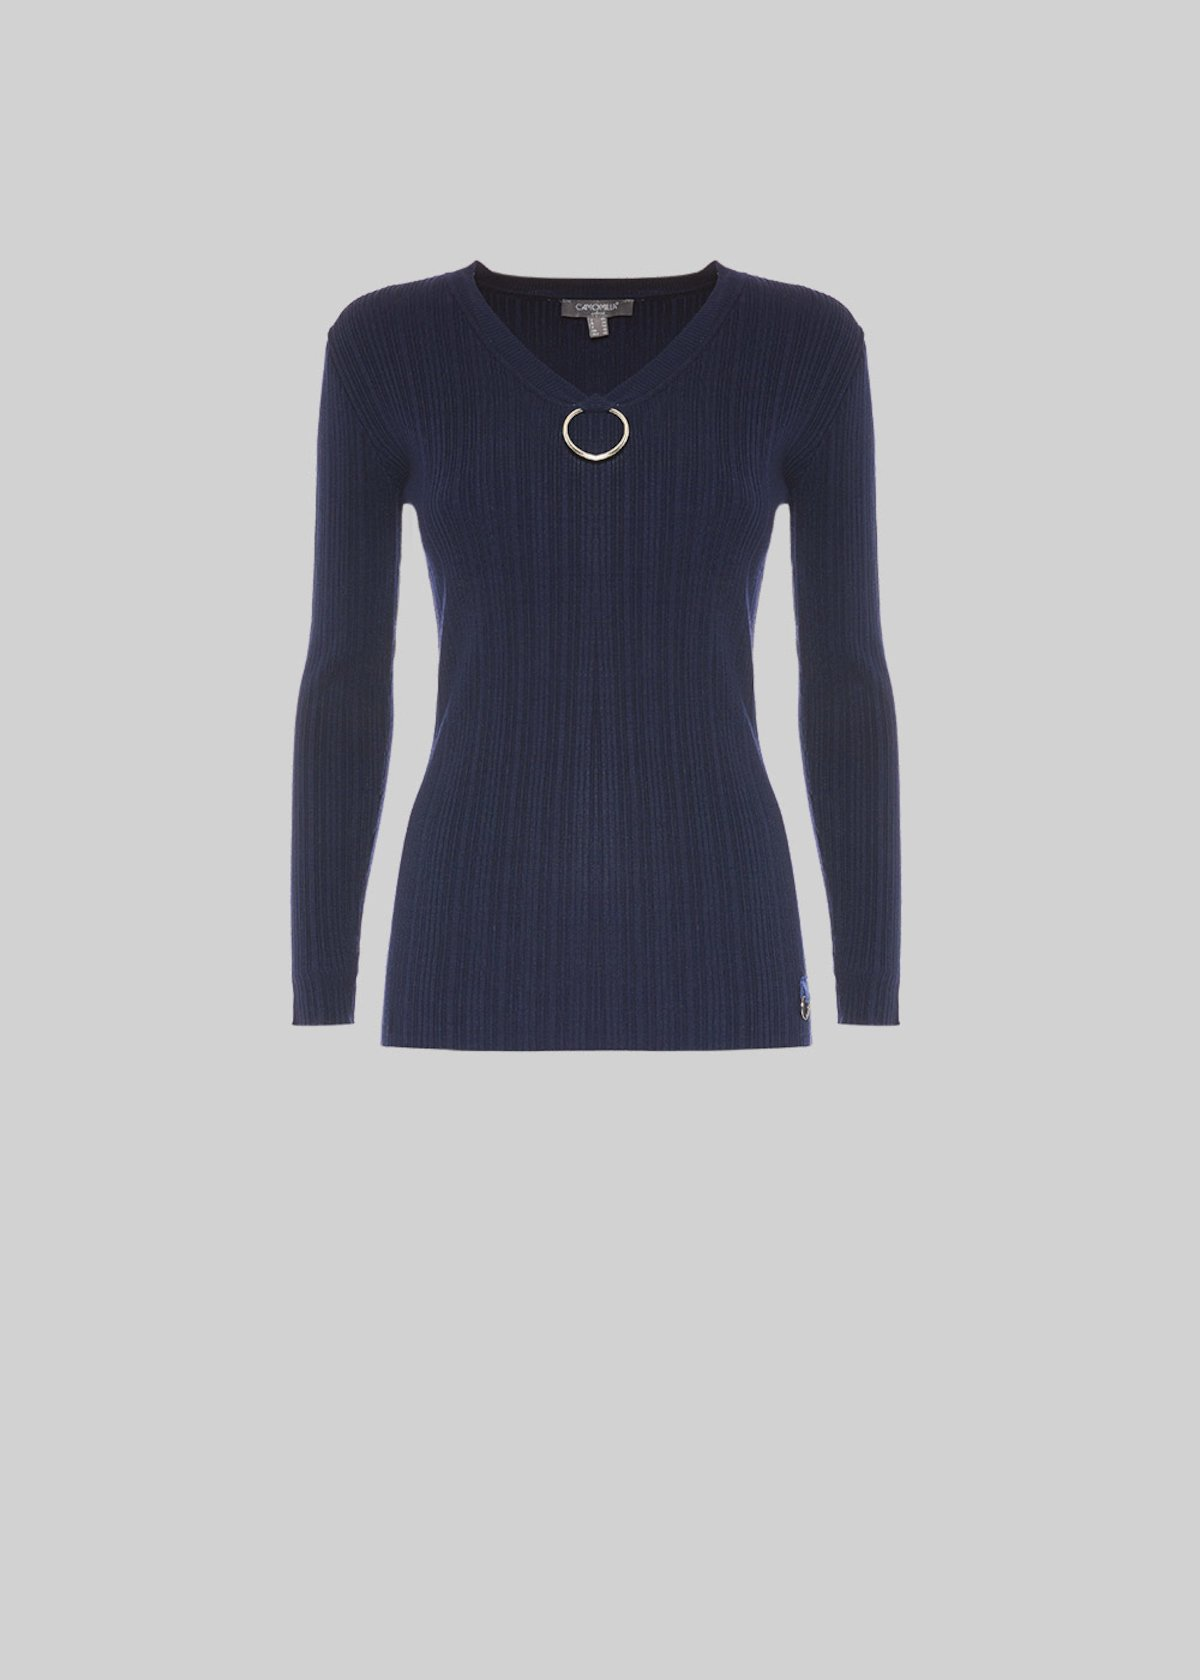 Mission ribbed knit sweater with ring detail - Medium Blue - Woman - Category image